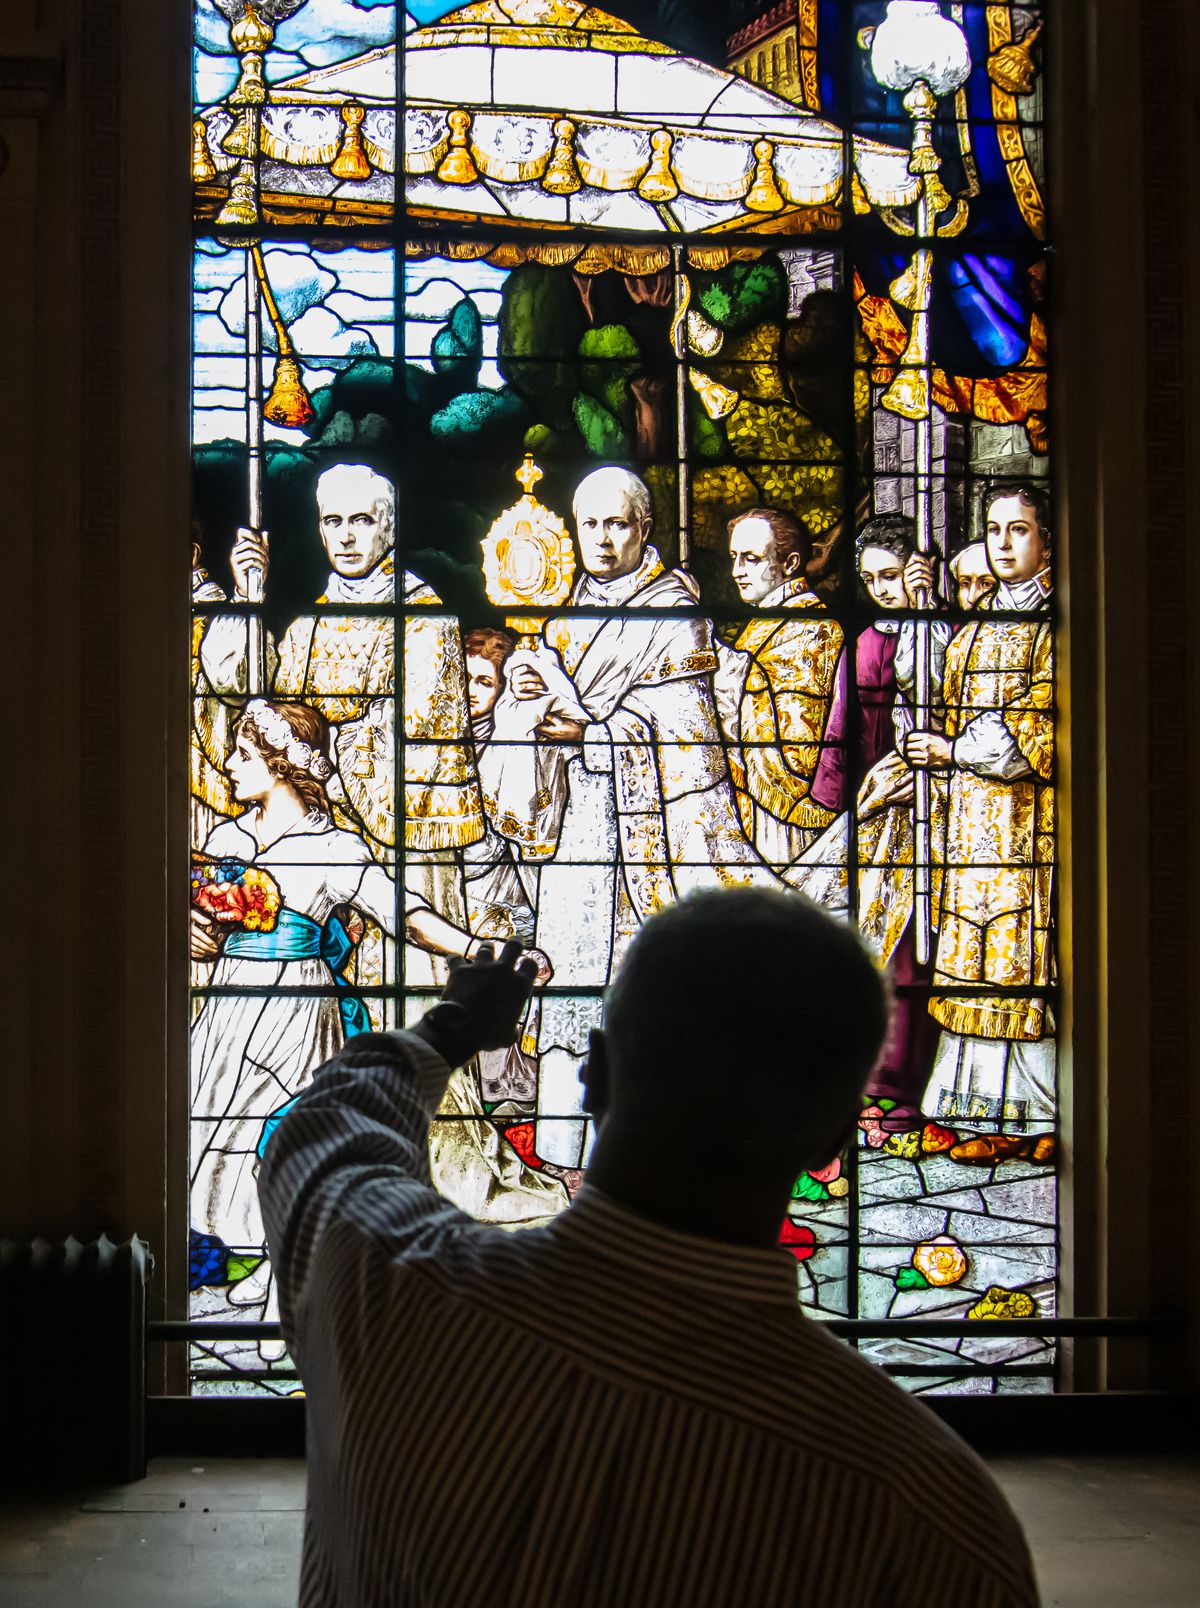 Church historian Larry Cope points out details of the F.X. Zettler-designed stained-glass windows.